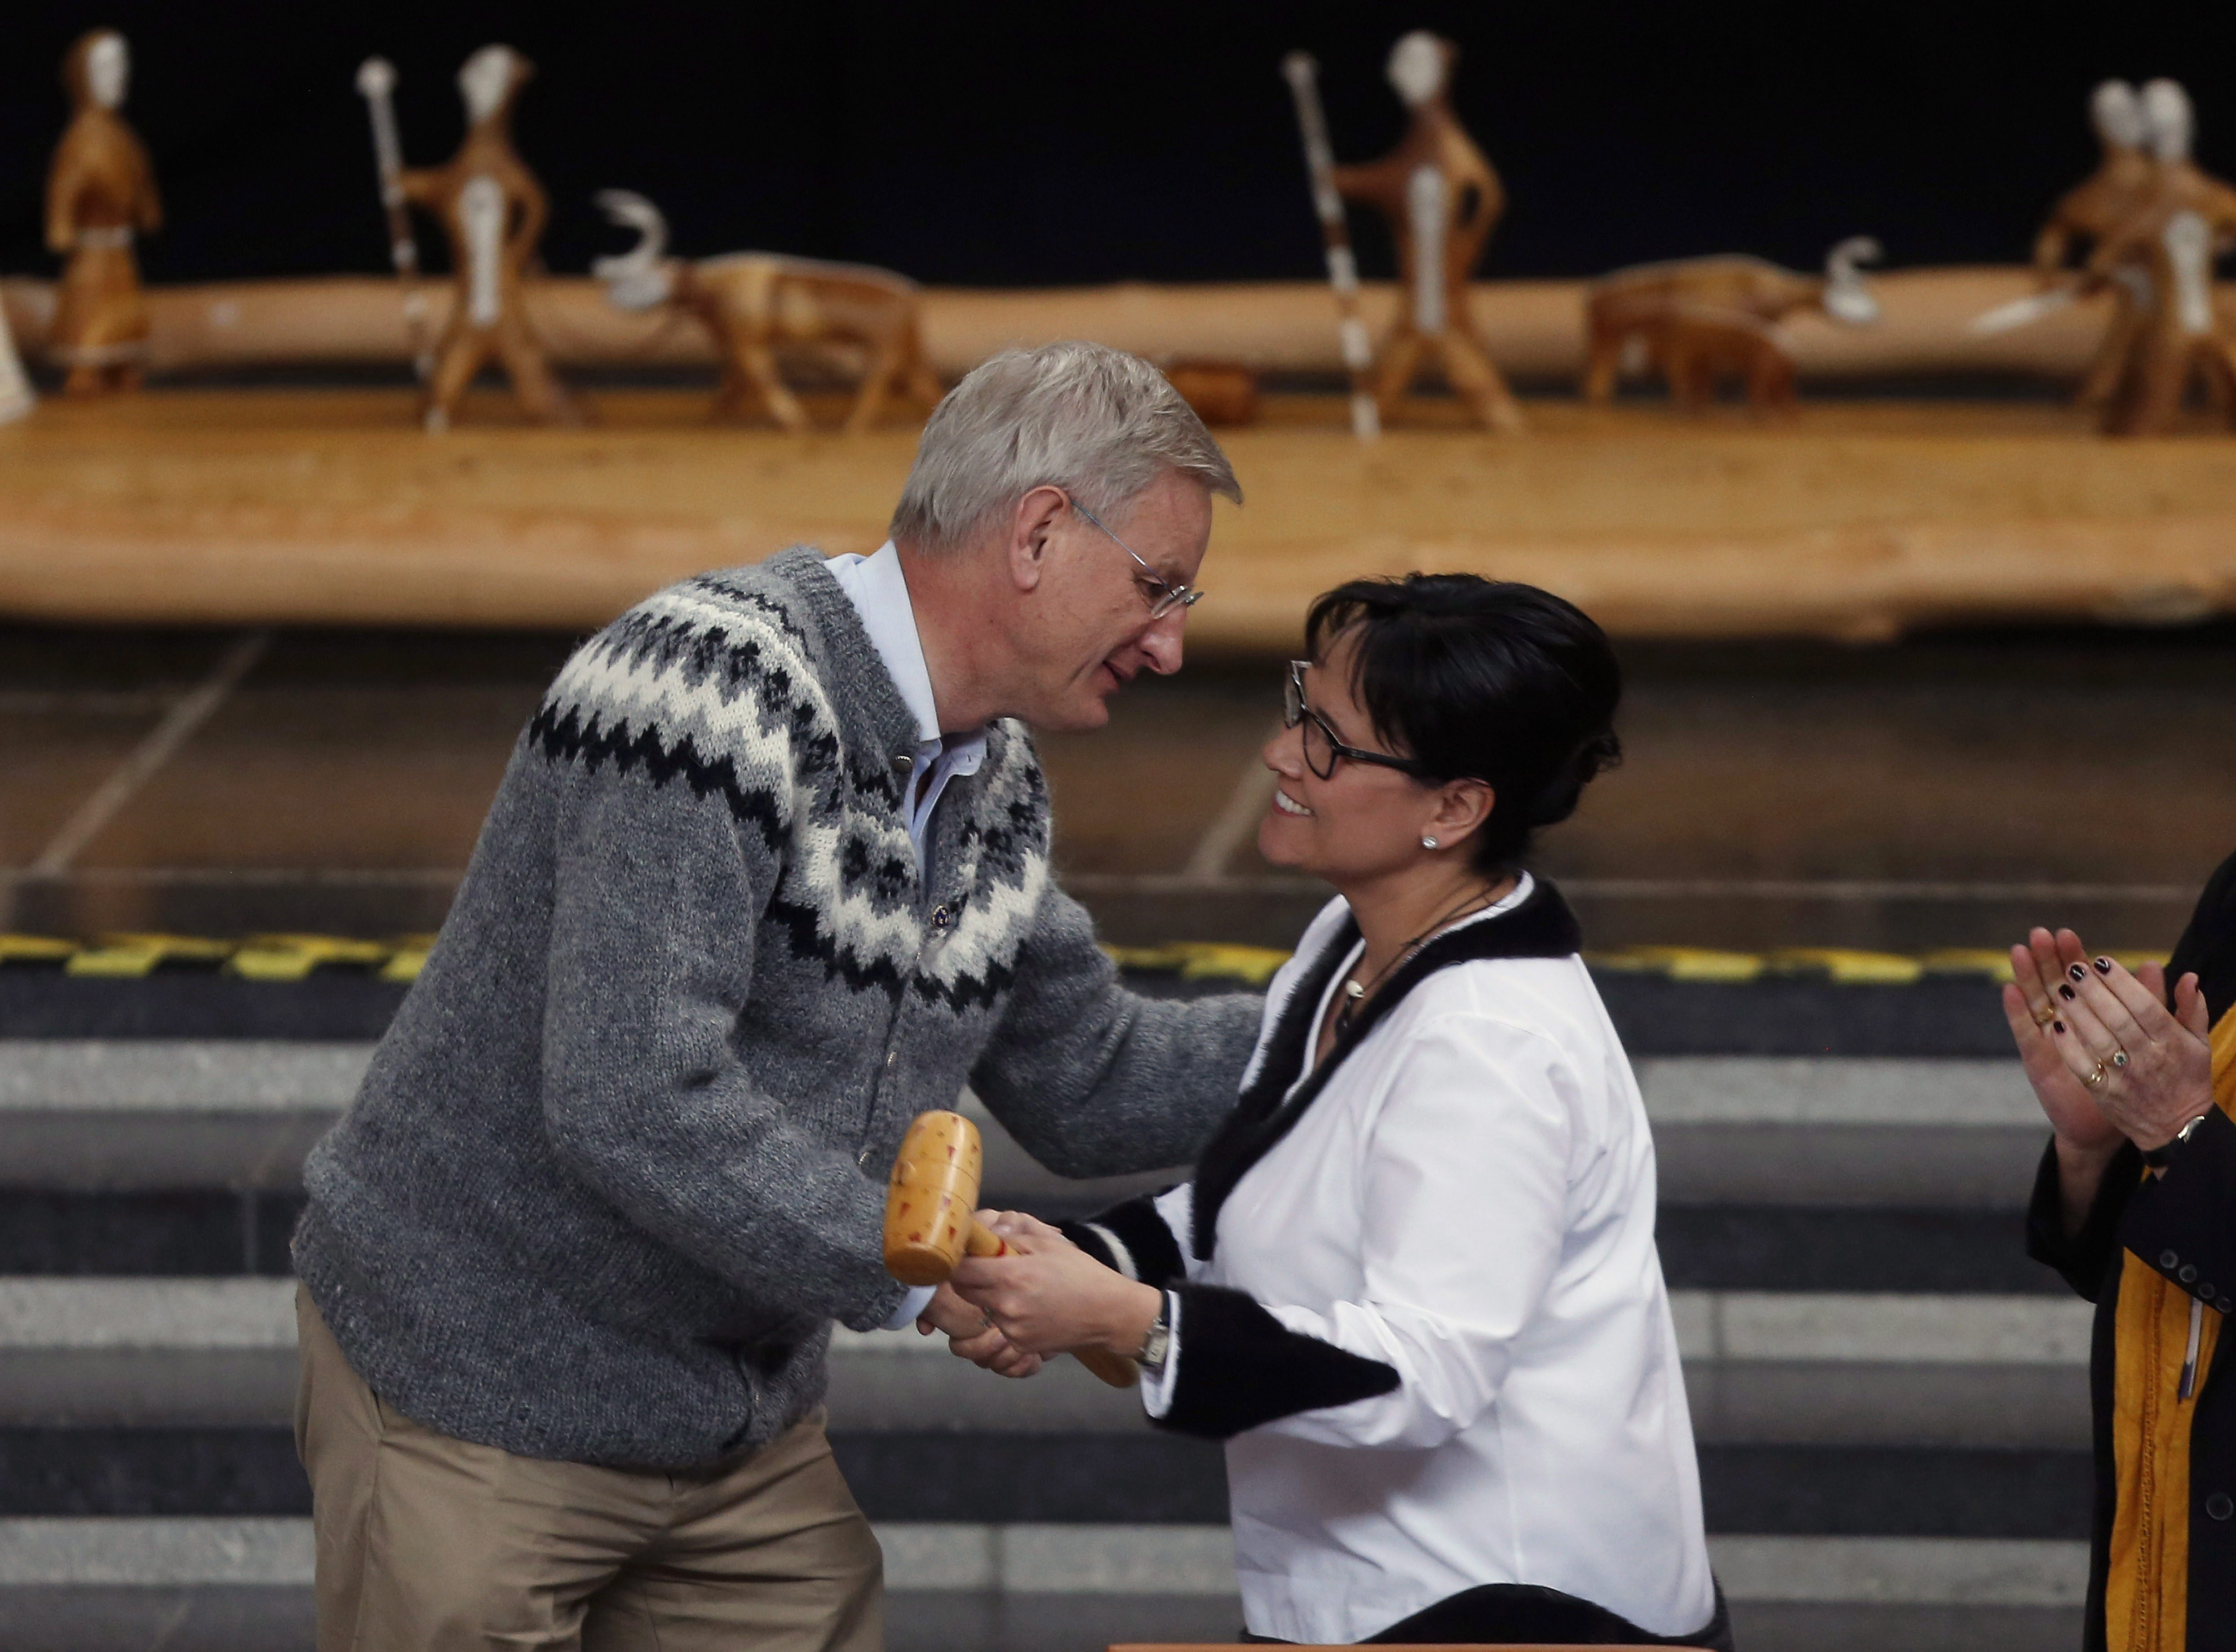 Sweden's Foreign Minister Carl Bildt hands the gavel which symbolizes handing the chairmanship of the Arctic Council to Canada's Minister of the Arctic Council Leona Aglukkaq, at the Arctic Council Ministerial Meeting, in Kiruna, Sweden, Wednesday, May 15, 2013, (Charles Dharapak / AP)